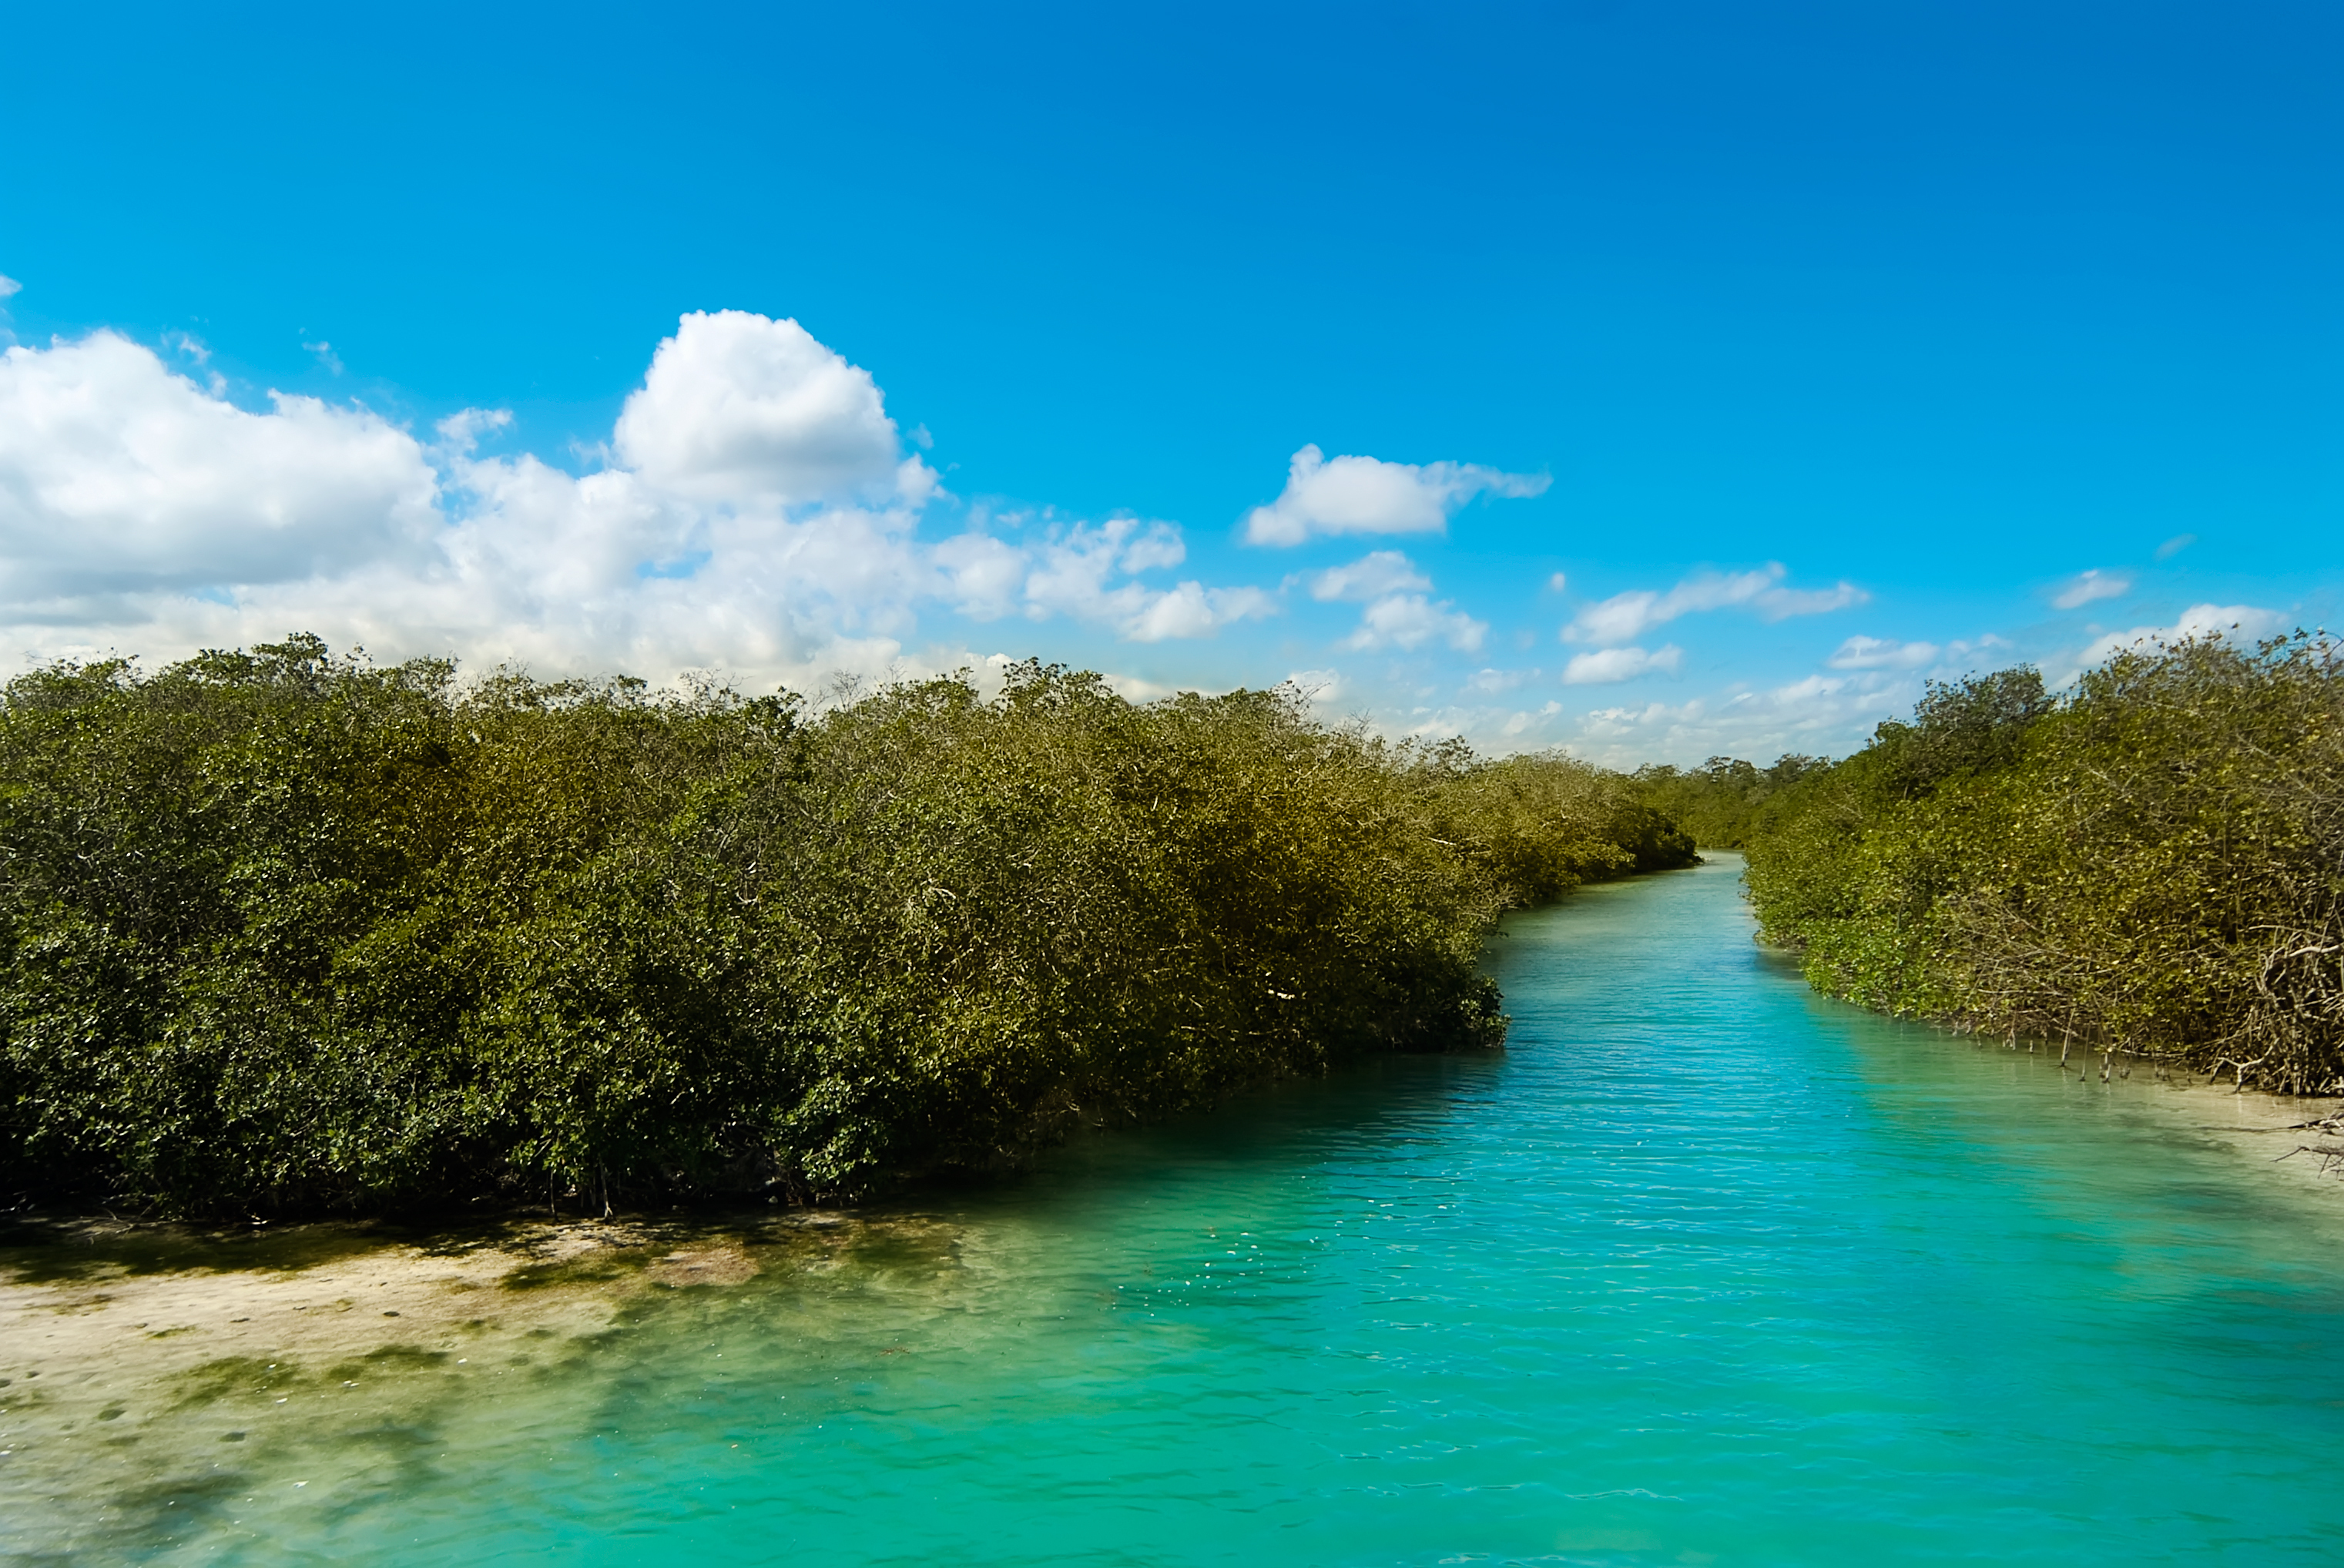 River and trees at Sian Kaan reserve in Mexico